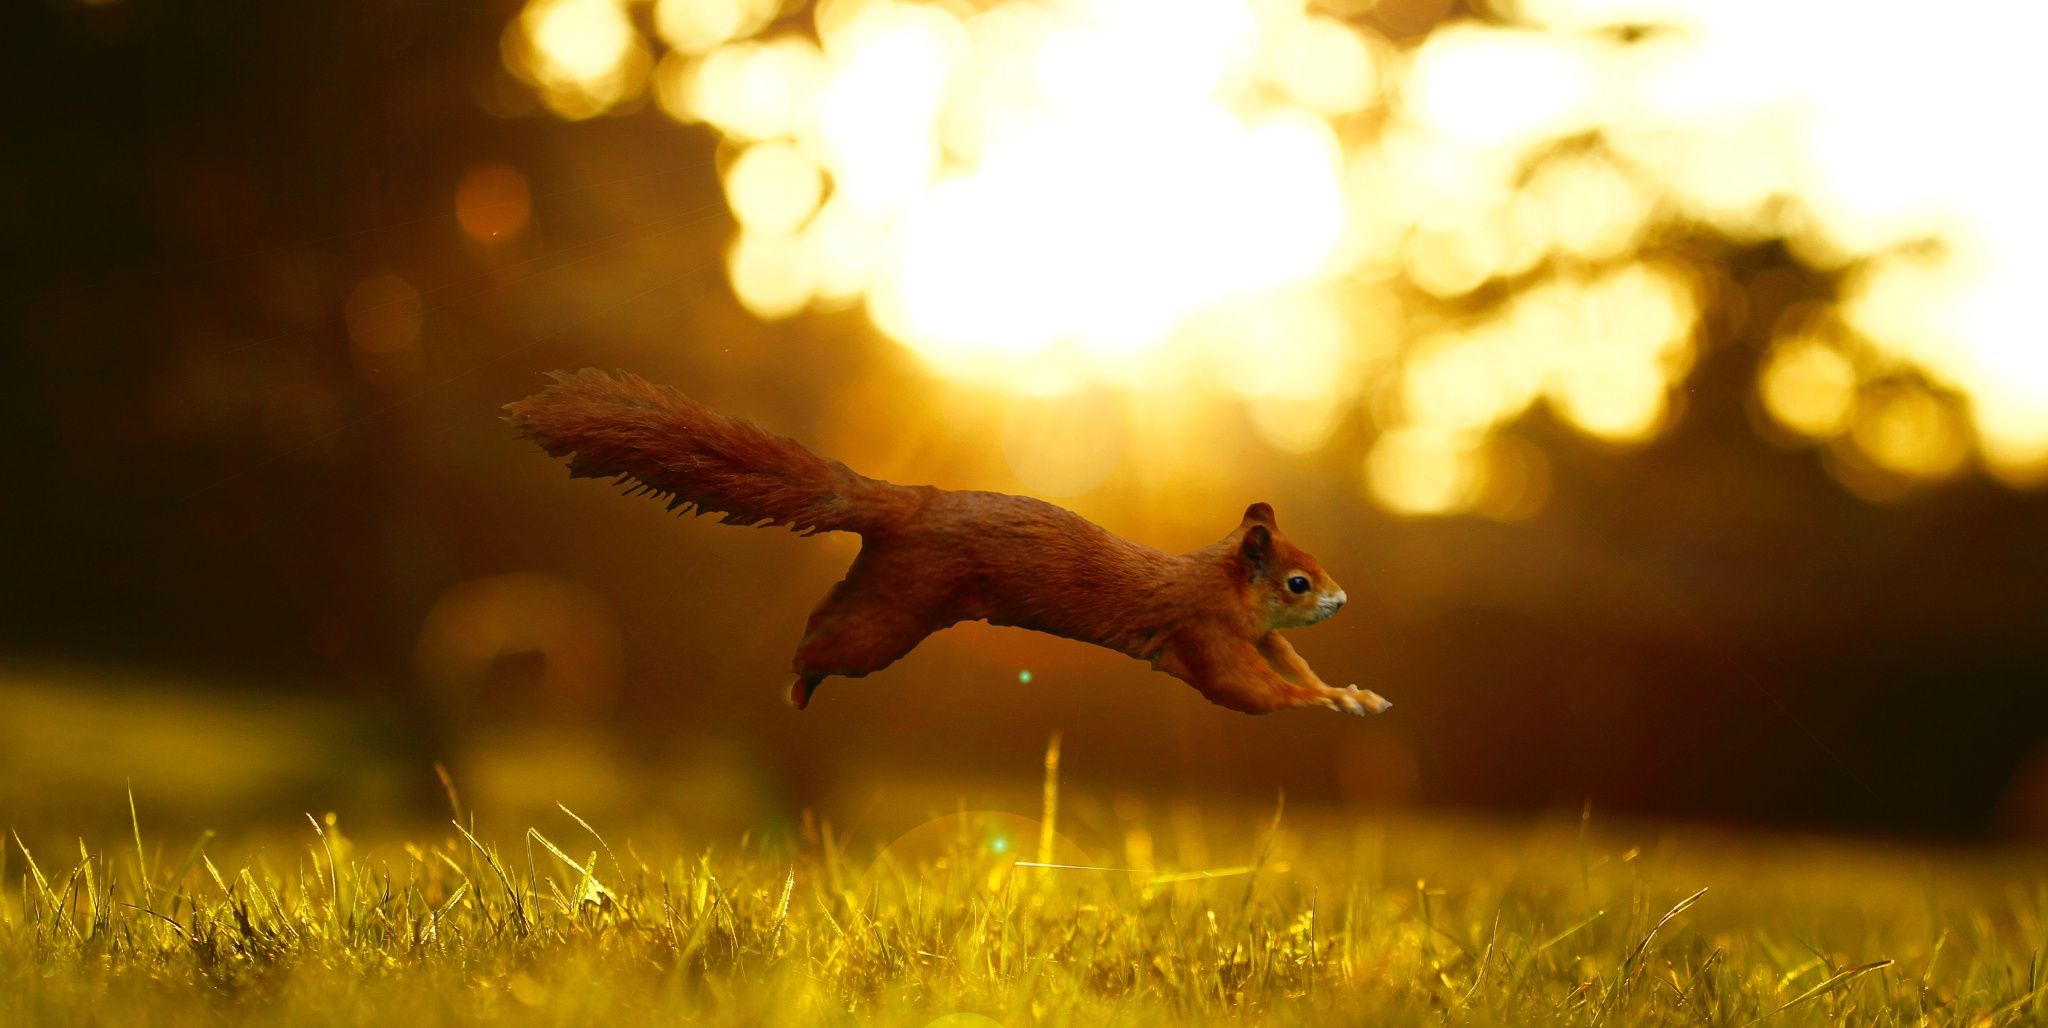 Red Squirrel Jumping  by James Blyth Currie